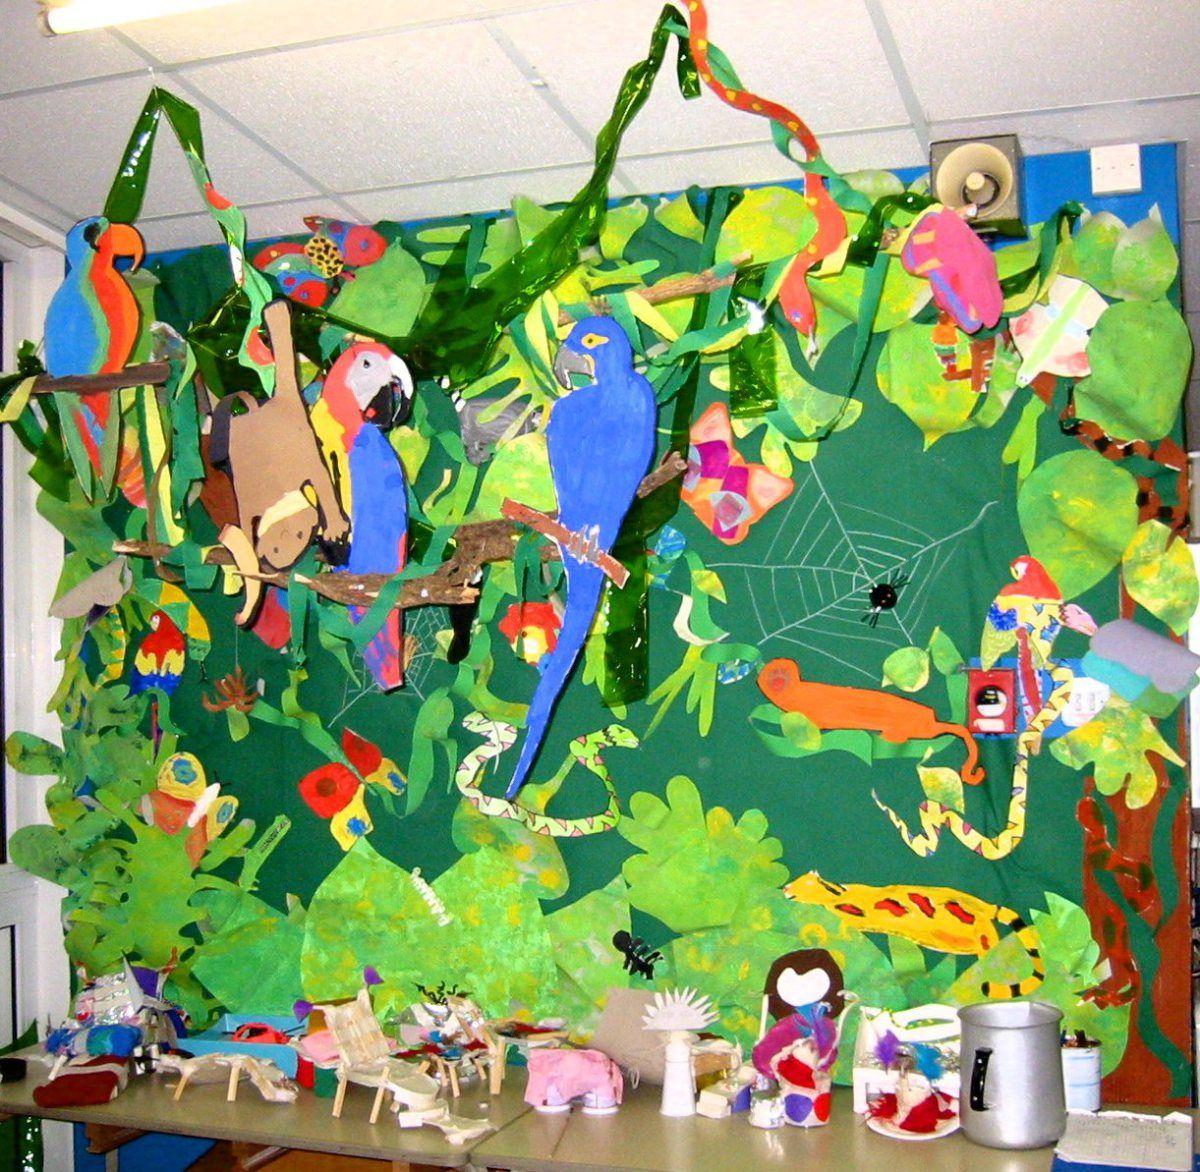 Rainforest Displays For Year 4